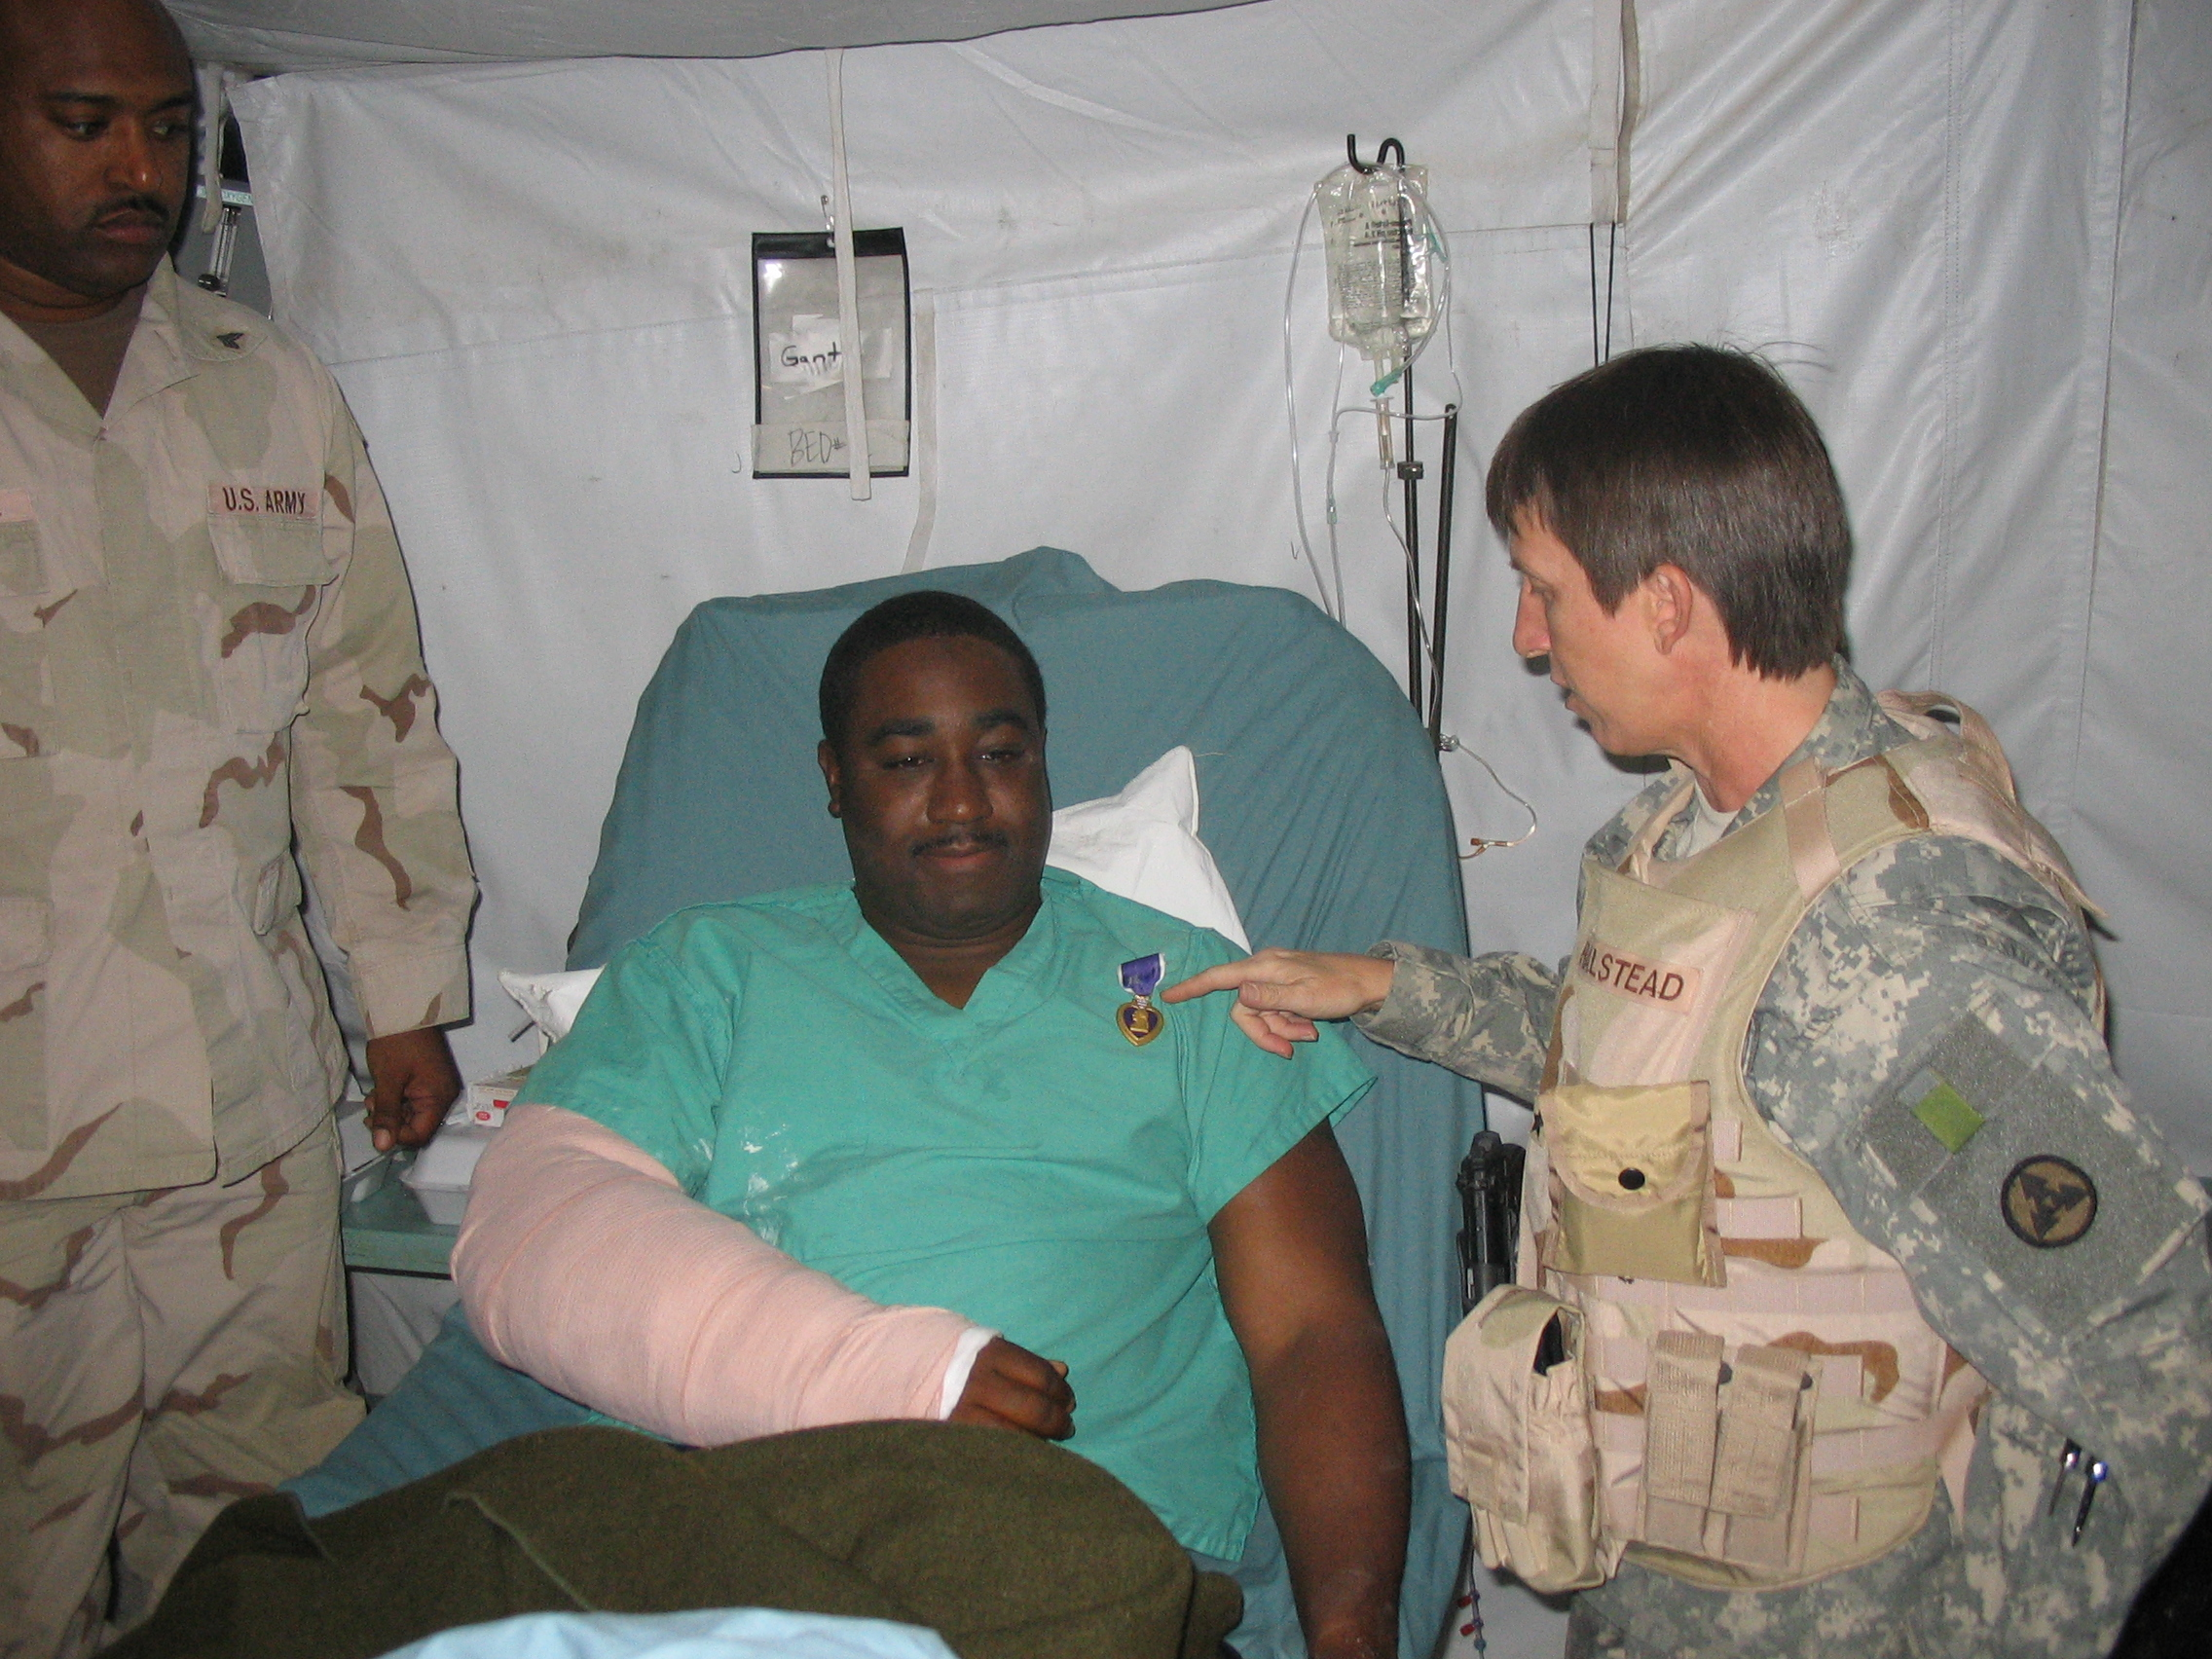 Brigadier General Halstead visits a wounded soldier to pin on his purple heart.